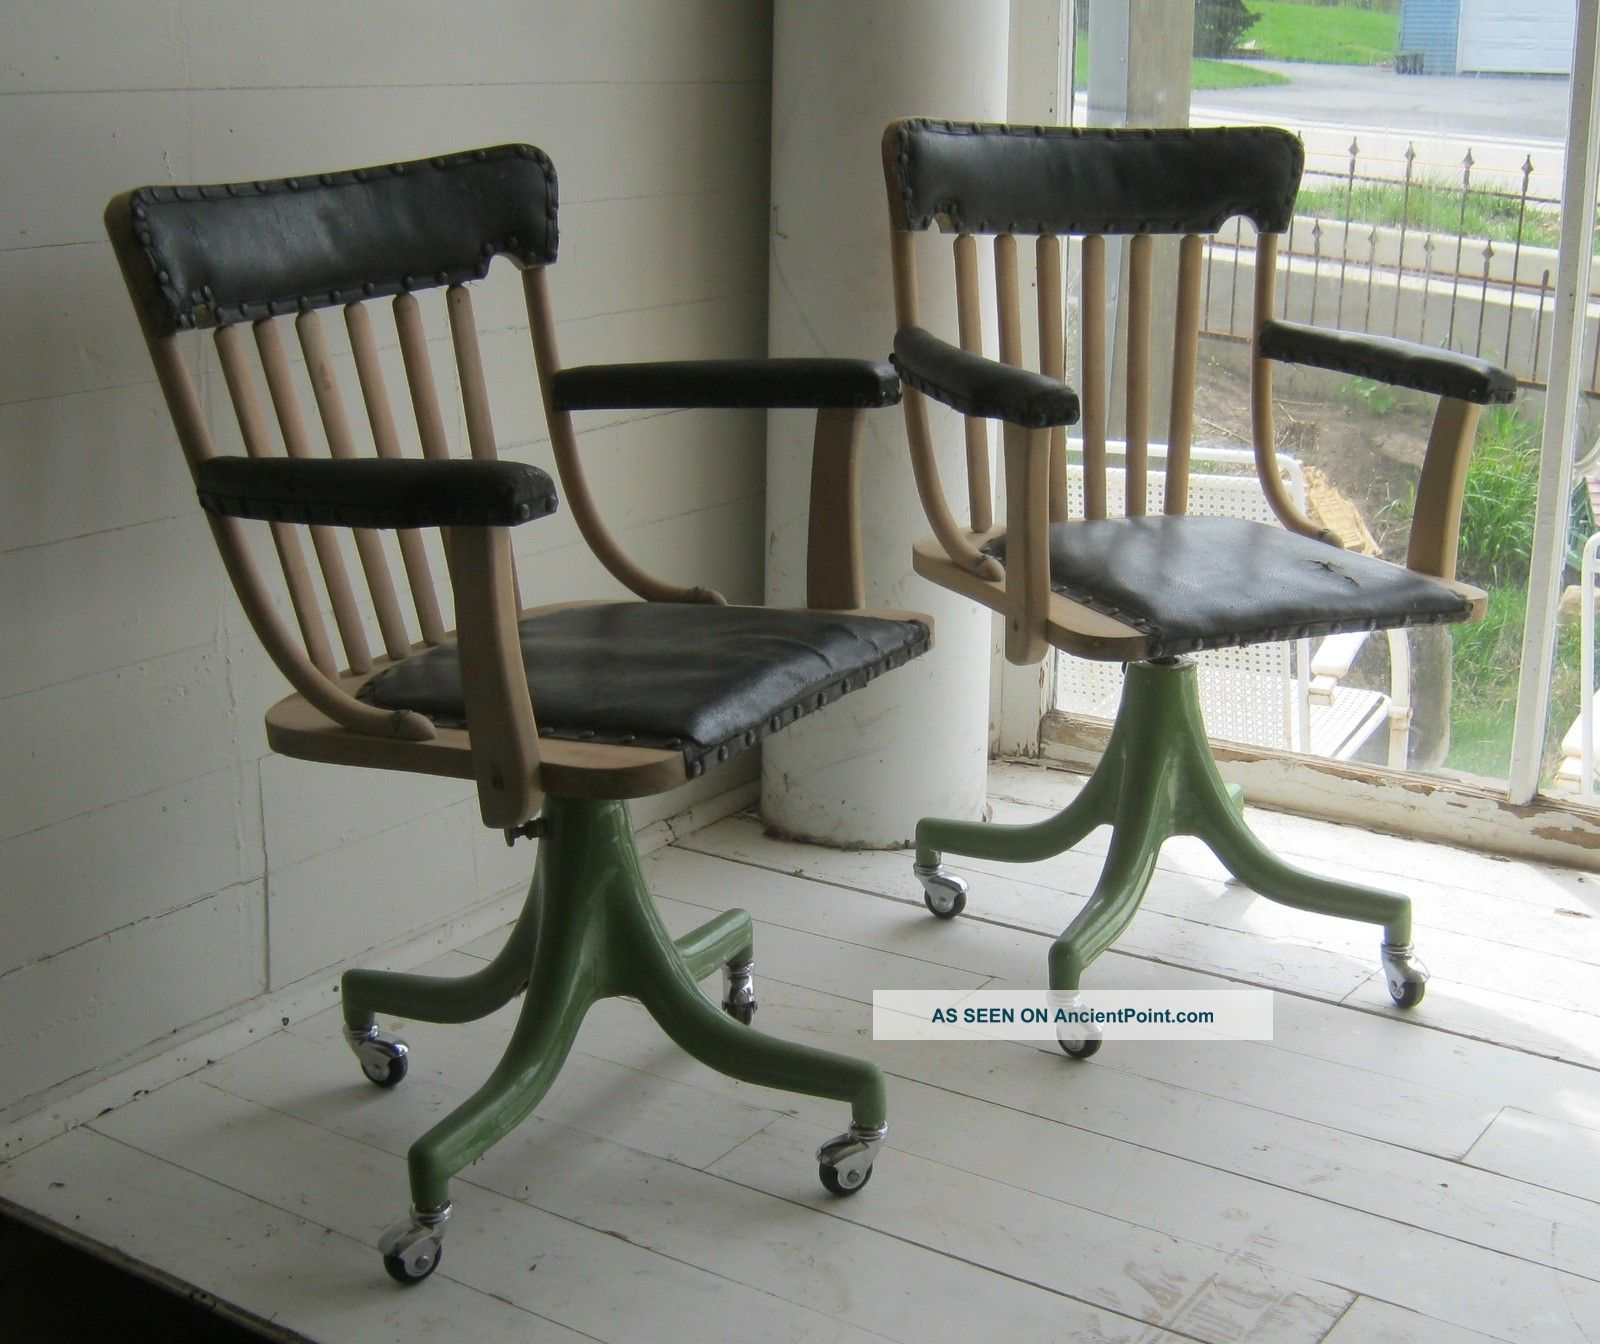 Furniture - Chairs - 1900-1950 | Antiques Browser